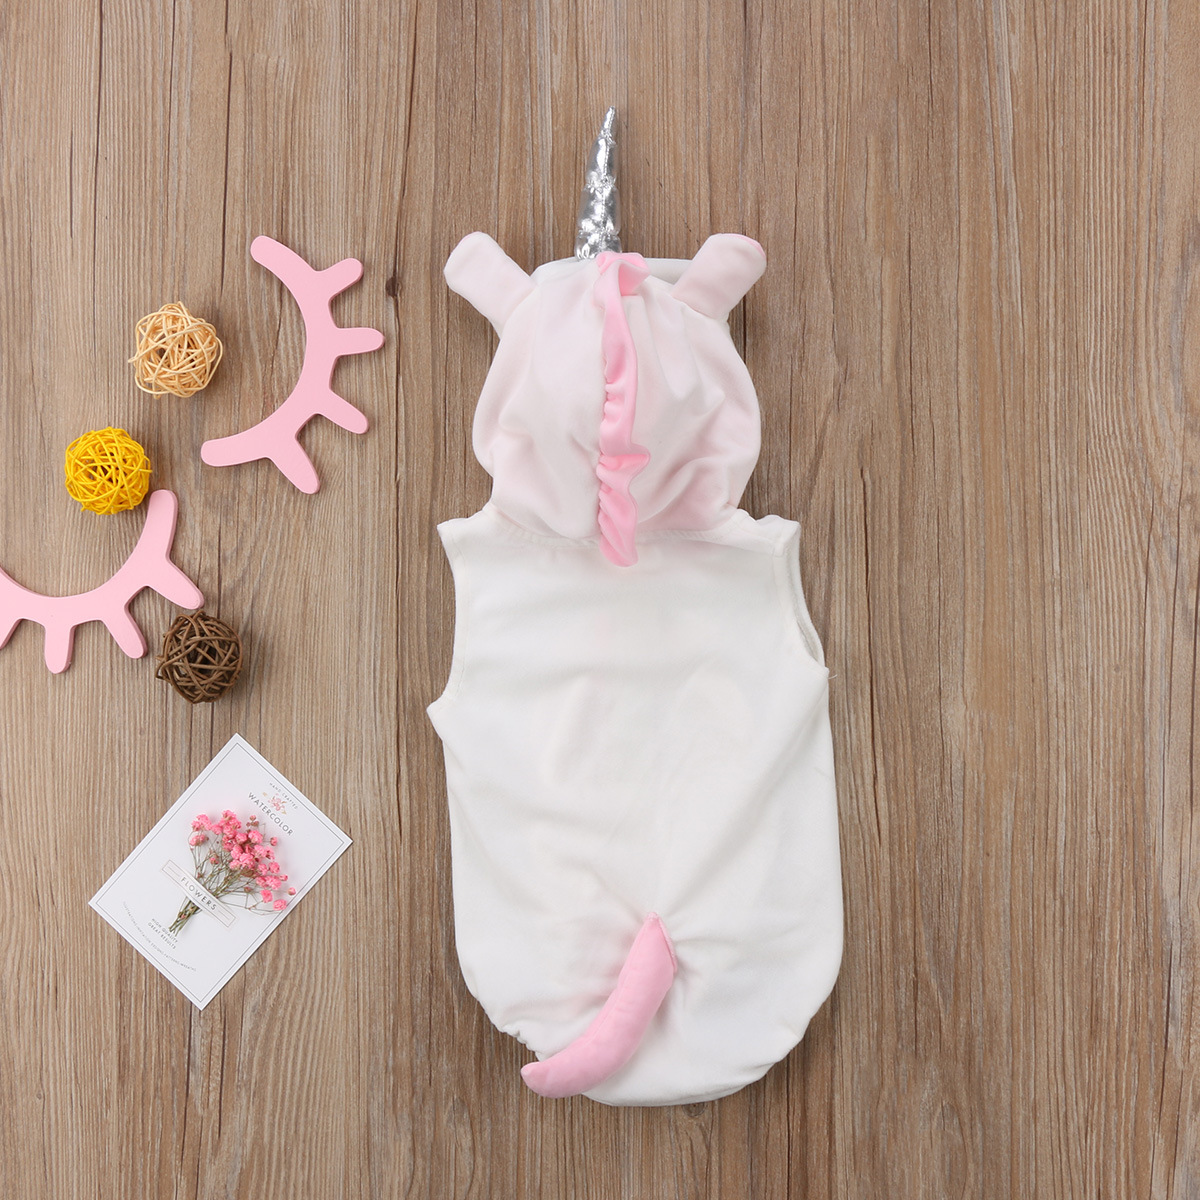 Baby girl Unicorn rompers Toddler girl romper Sleeveless Dropship nascido baby onesie newborn new born clothes winter autumn in Rompers from Mother Kids